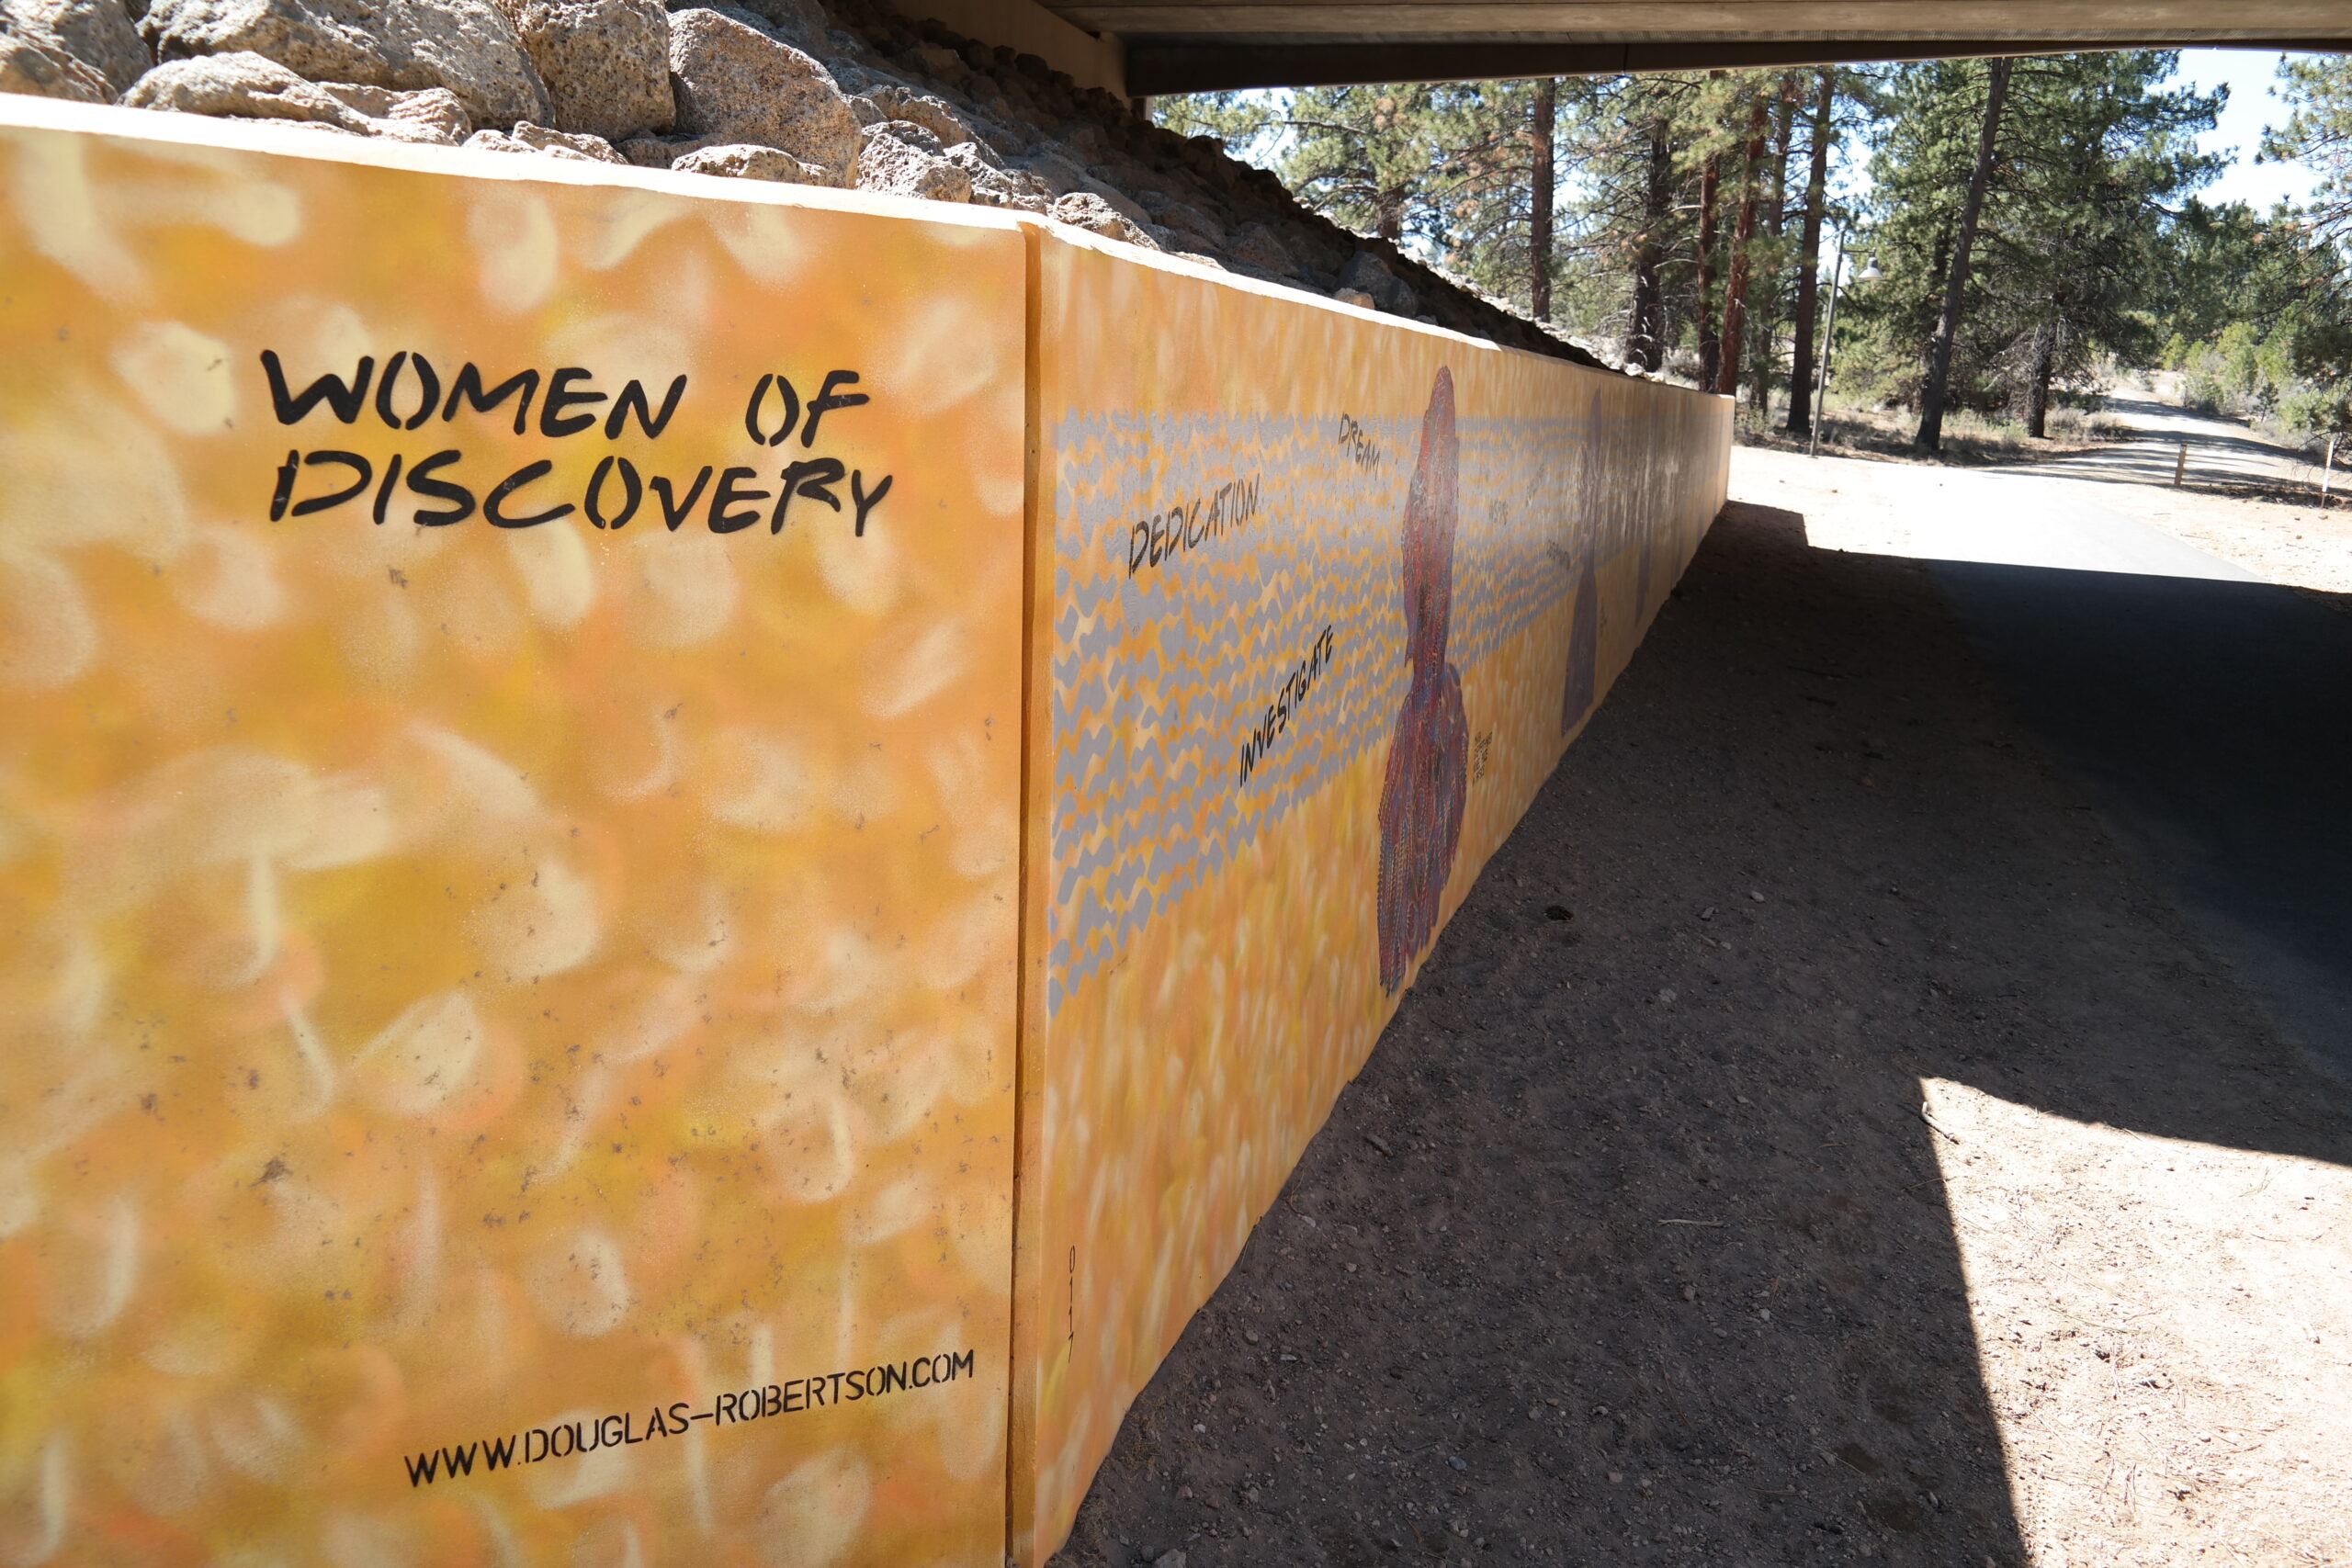 Image of Outback Trail underpass and mural.